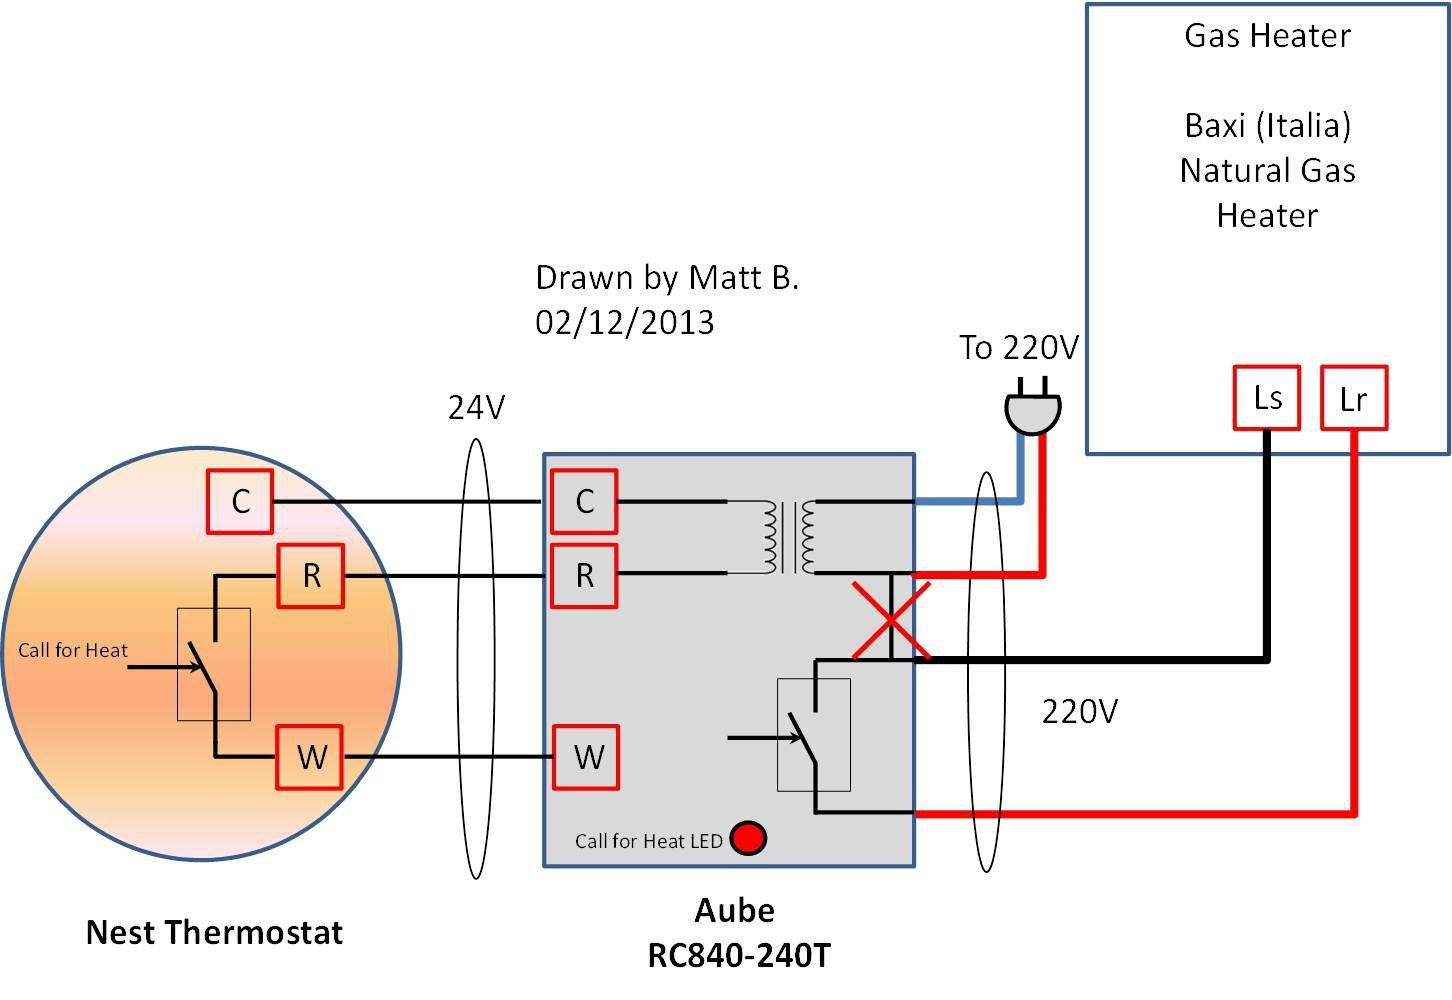 Wiring Diagram For Nest Thermostat Uk | Wiring Diagram - Nest Wiring Diagram Gas